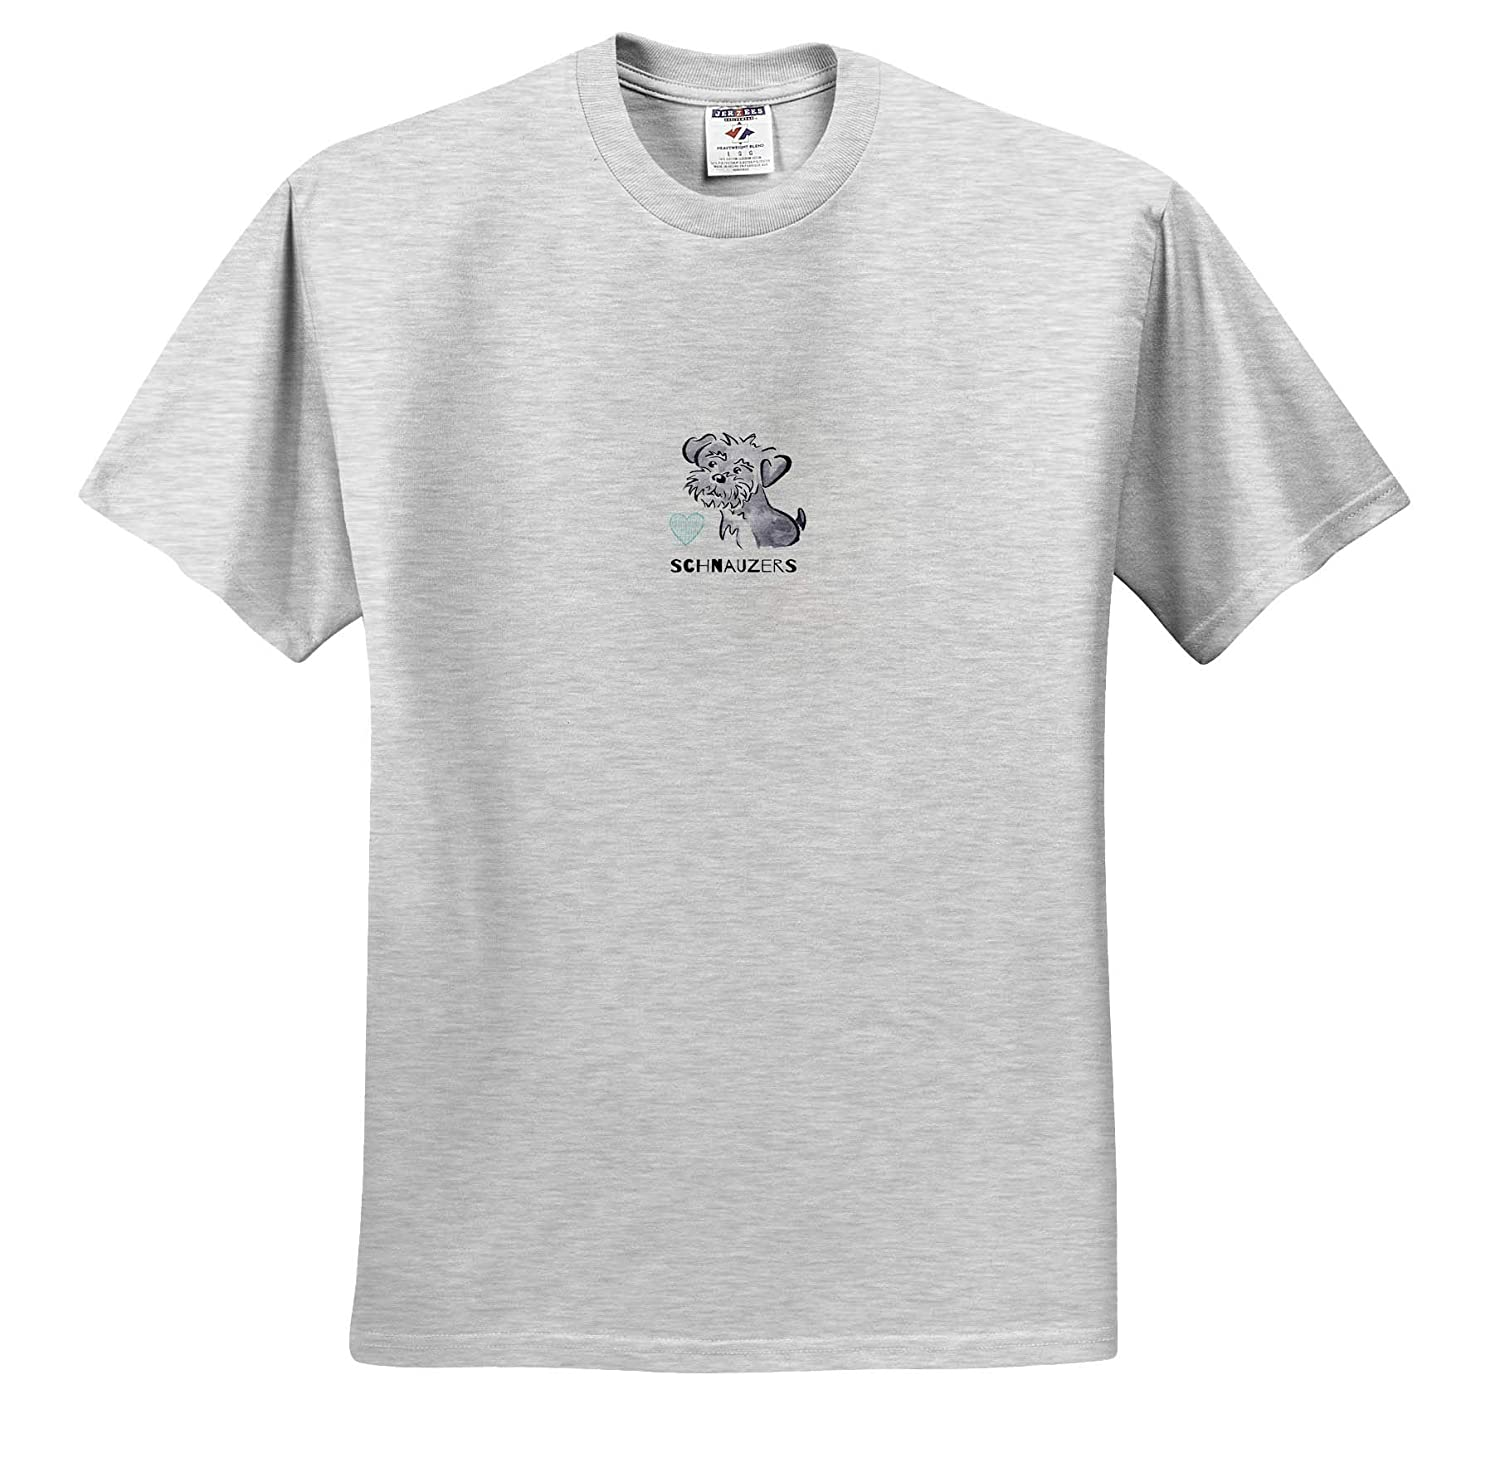 Illustrations Watercolor 3dRose Art by Mandy Joy - T-Shirts A Cute Cartoon of a Schnauzer Puppy with Typography